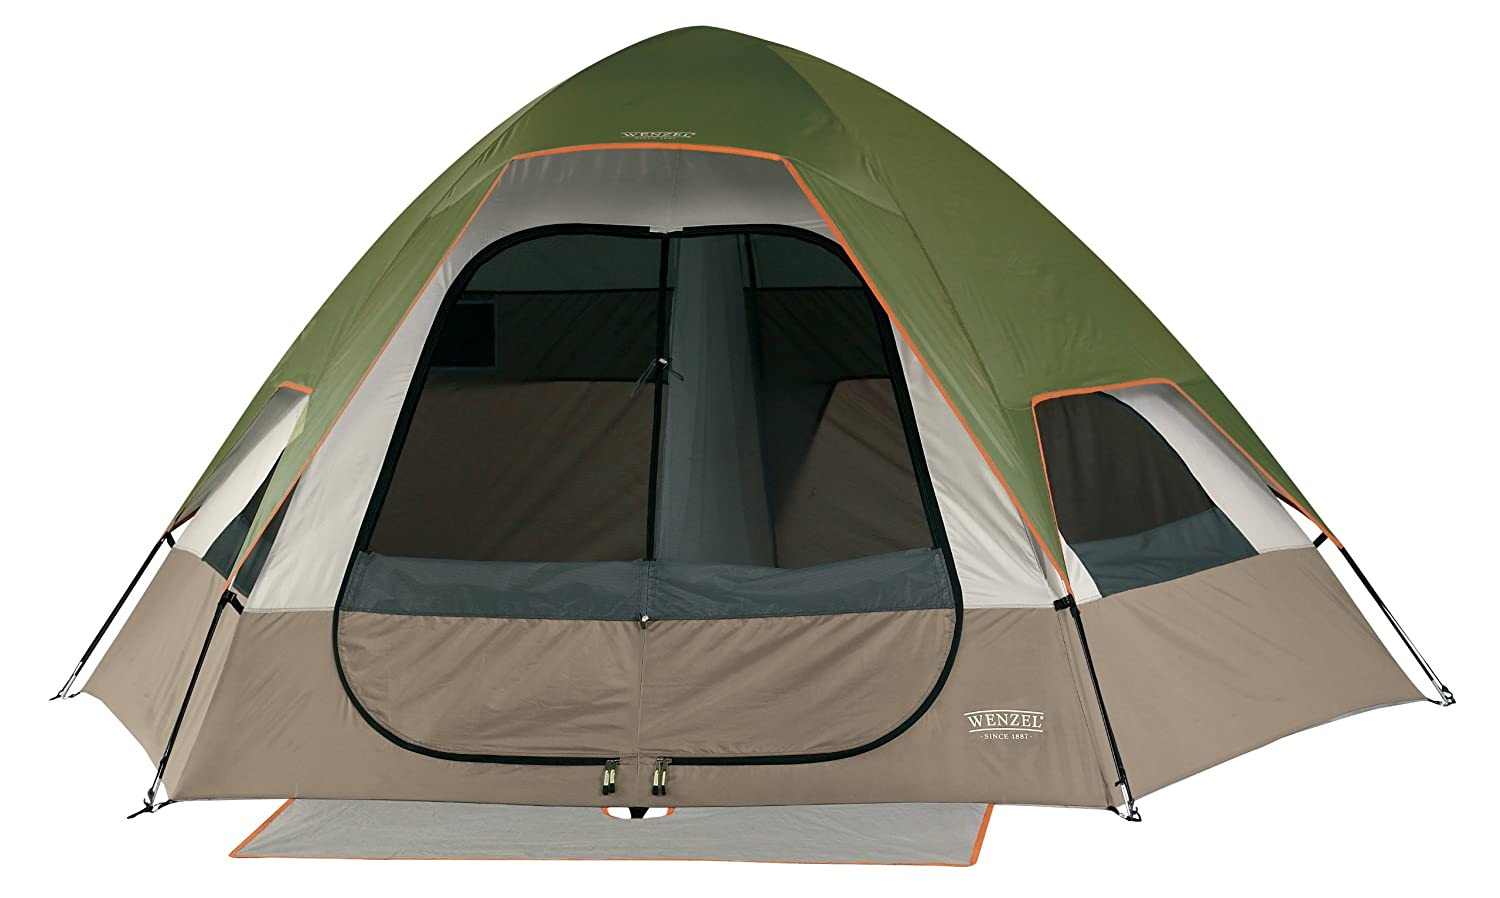 Amazon.com  Wenzel Big Bend 12-by-10 Foot Five-Person Two-Room Family Dome Tent  Sports u0026 Outdoors  sc 1 st  Amazon.com & Amazon.com : Wenzel Big Bend 12-by-10 Foot Five-Person Two-Room ...